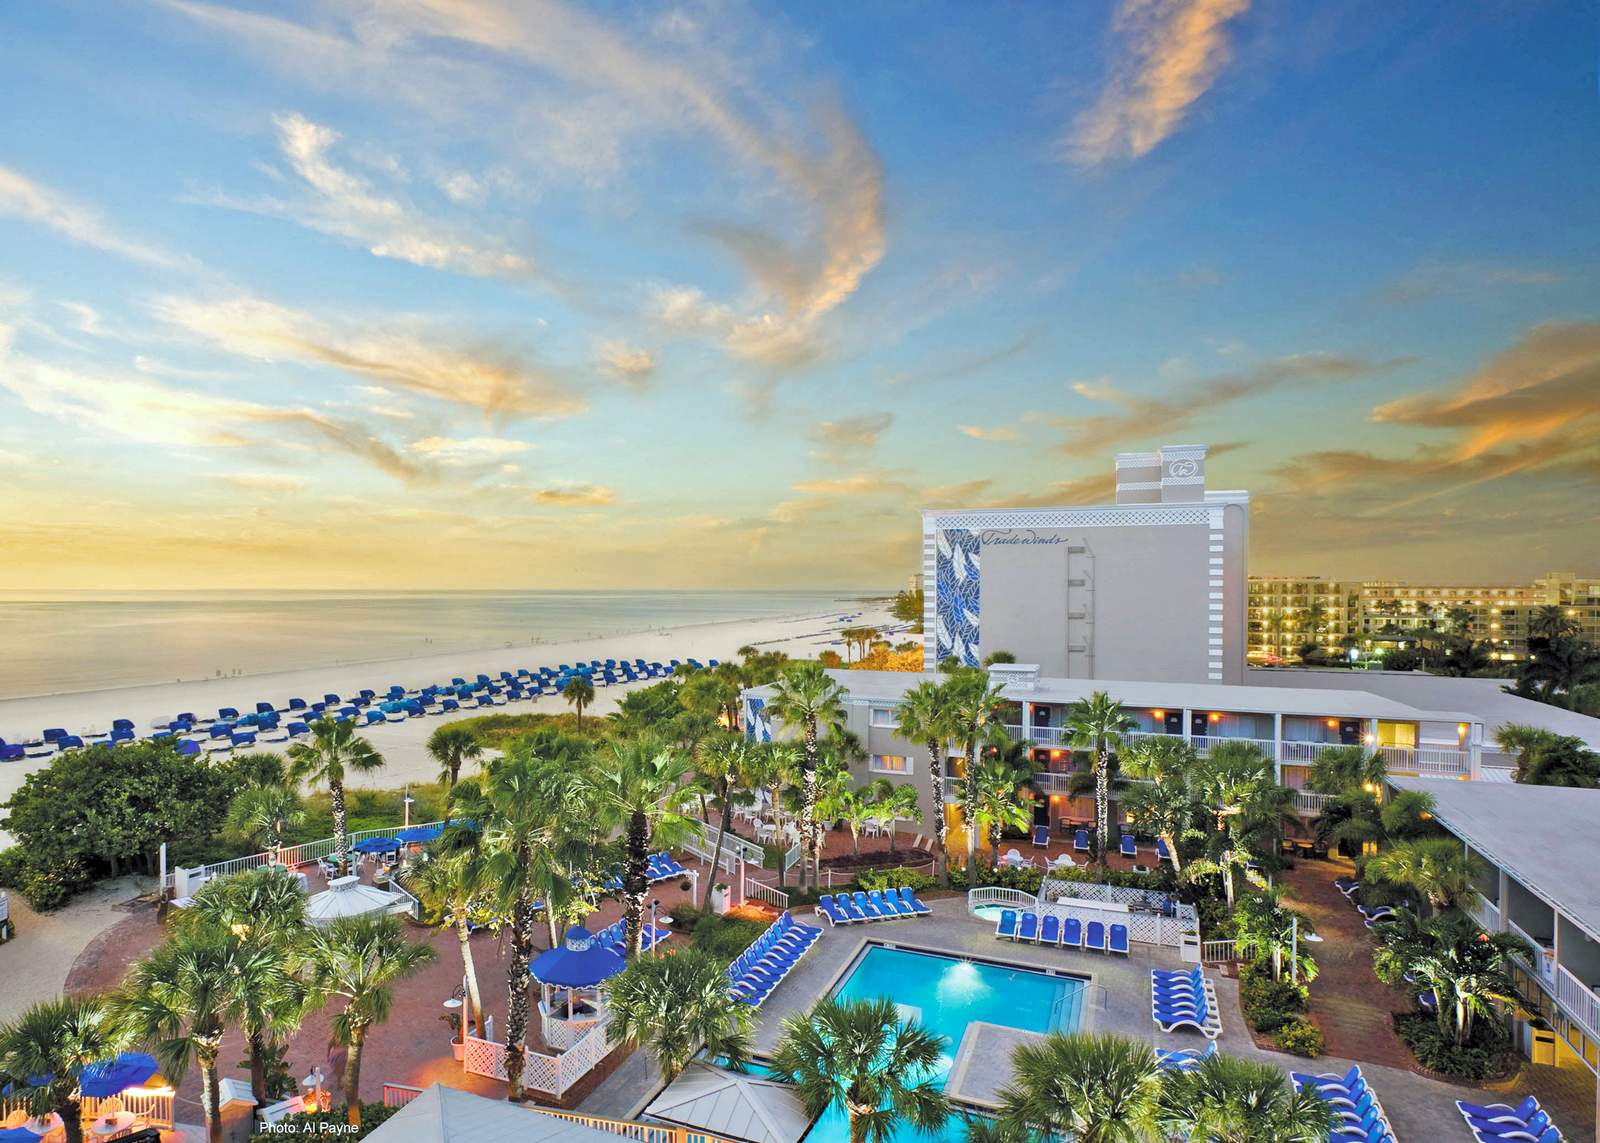 Trade Winds Hotel St Petersburg Beach Florida